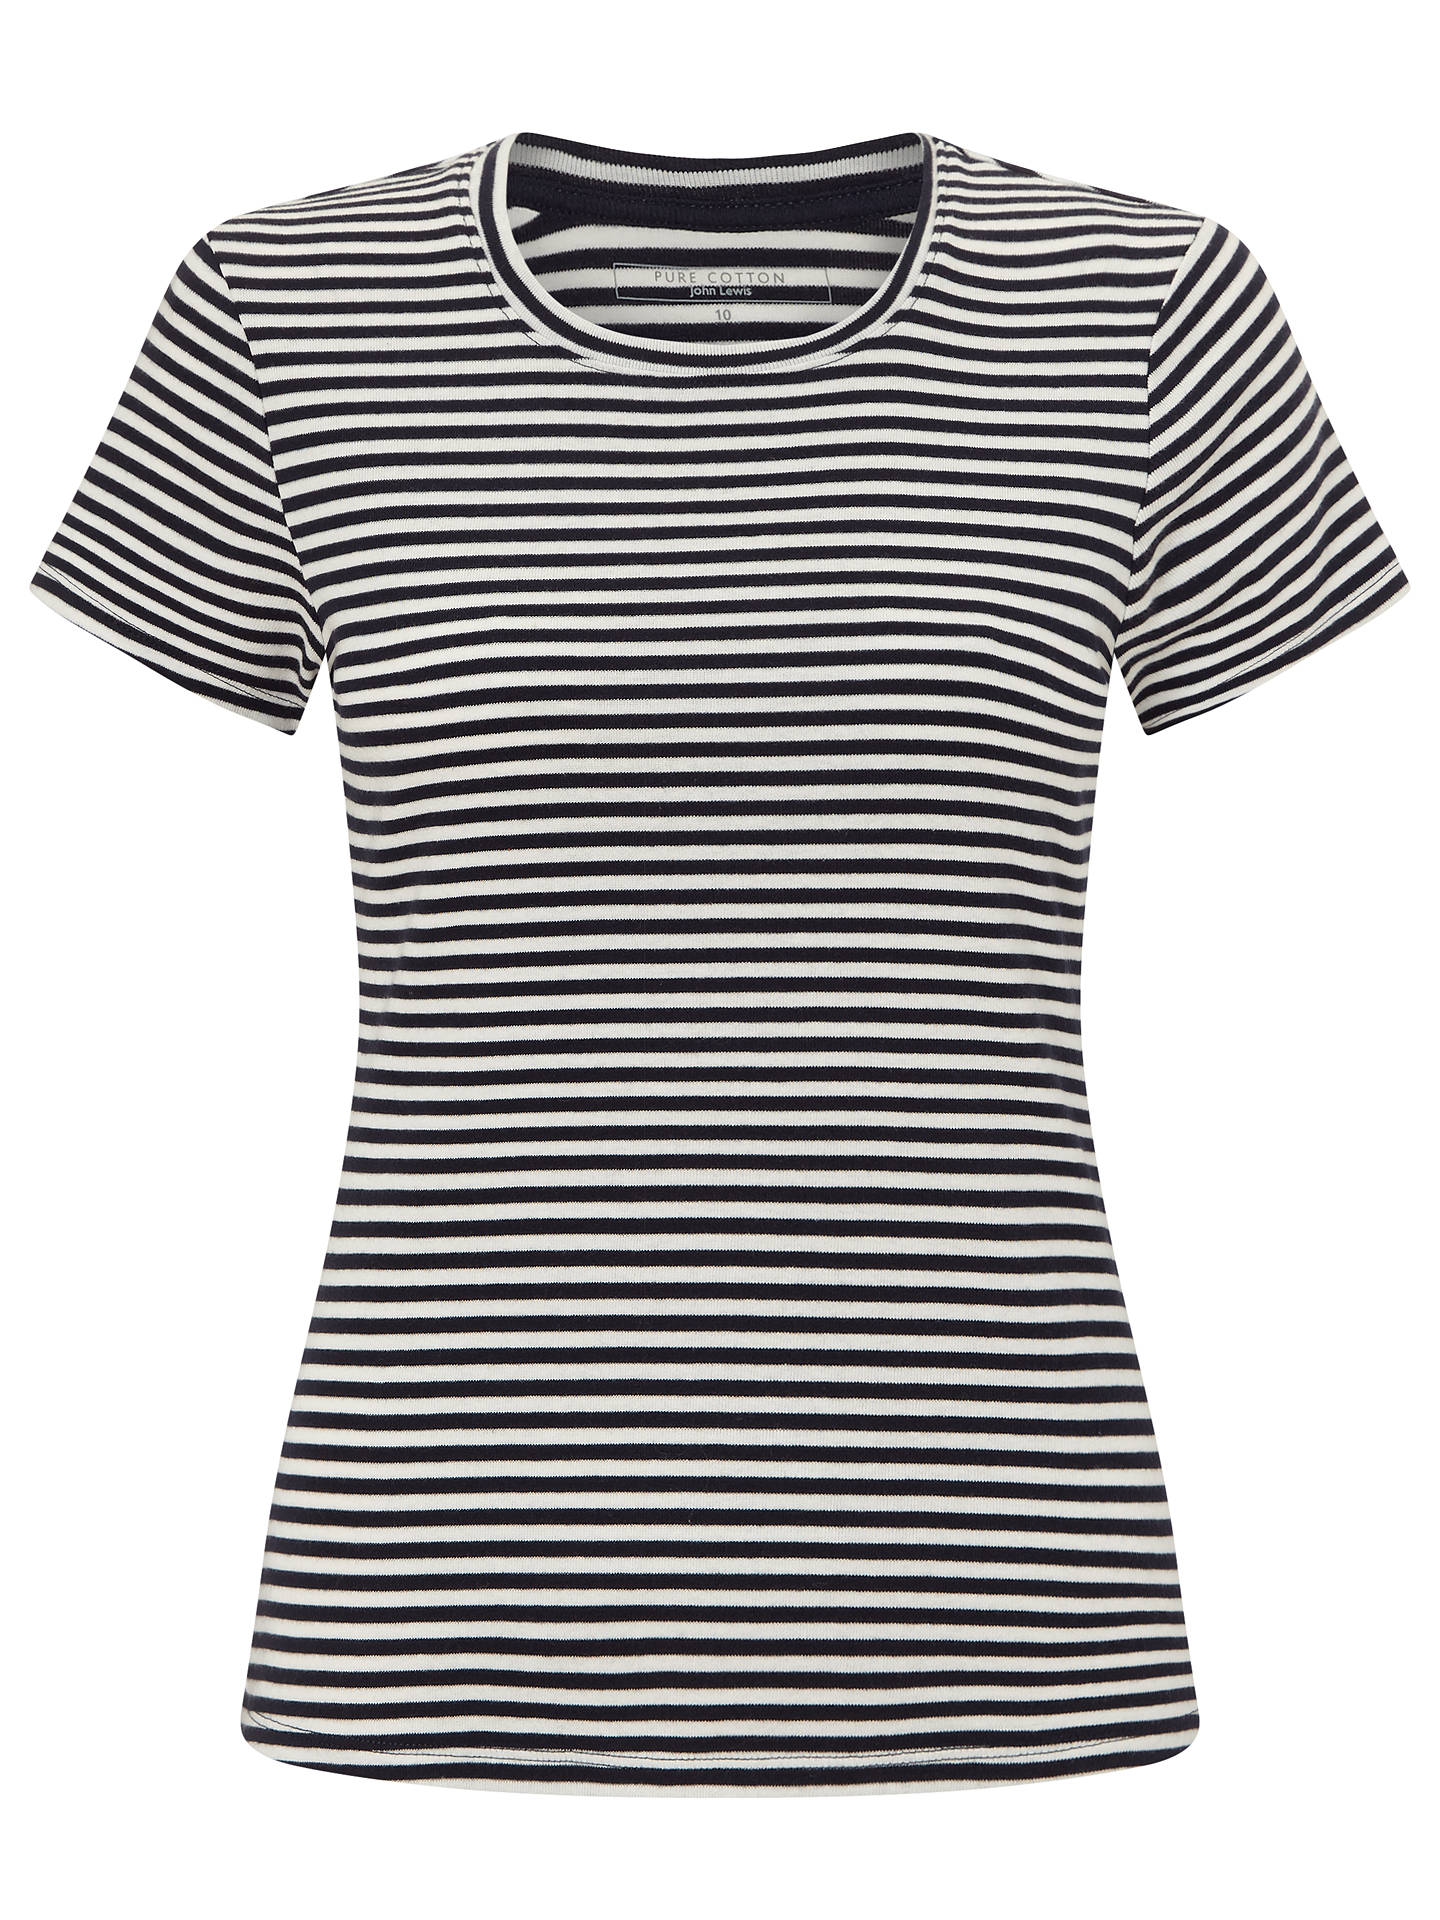 Buy John Lewis Crew Neck Stripe T-Shirt, White/Navy Stripe, 8 Online at johnlewis.com